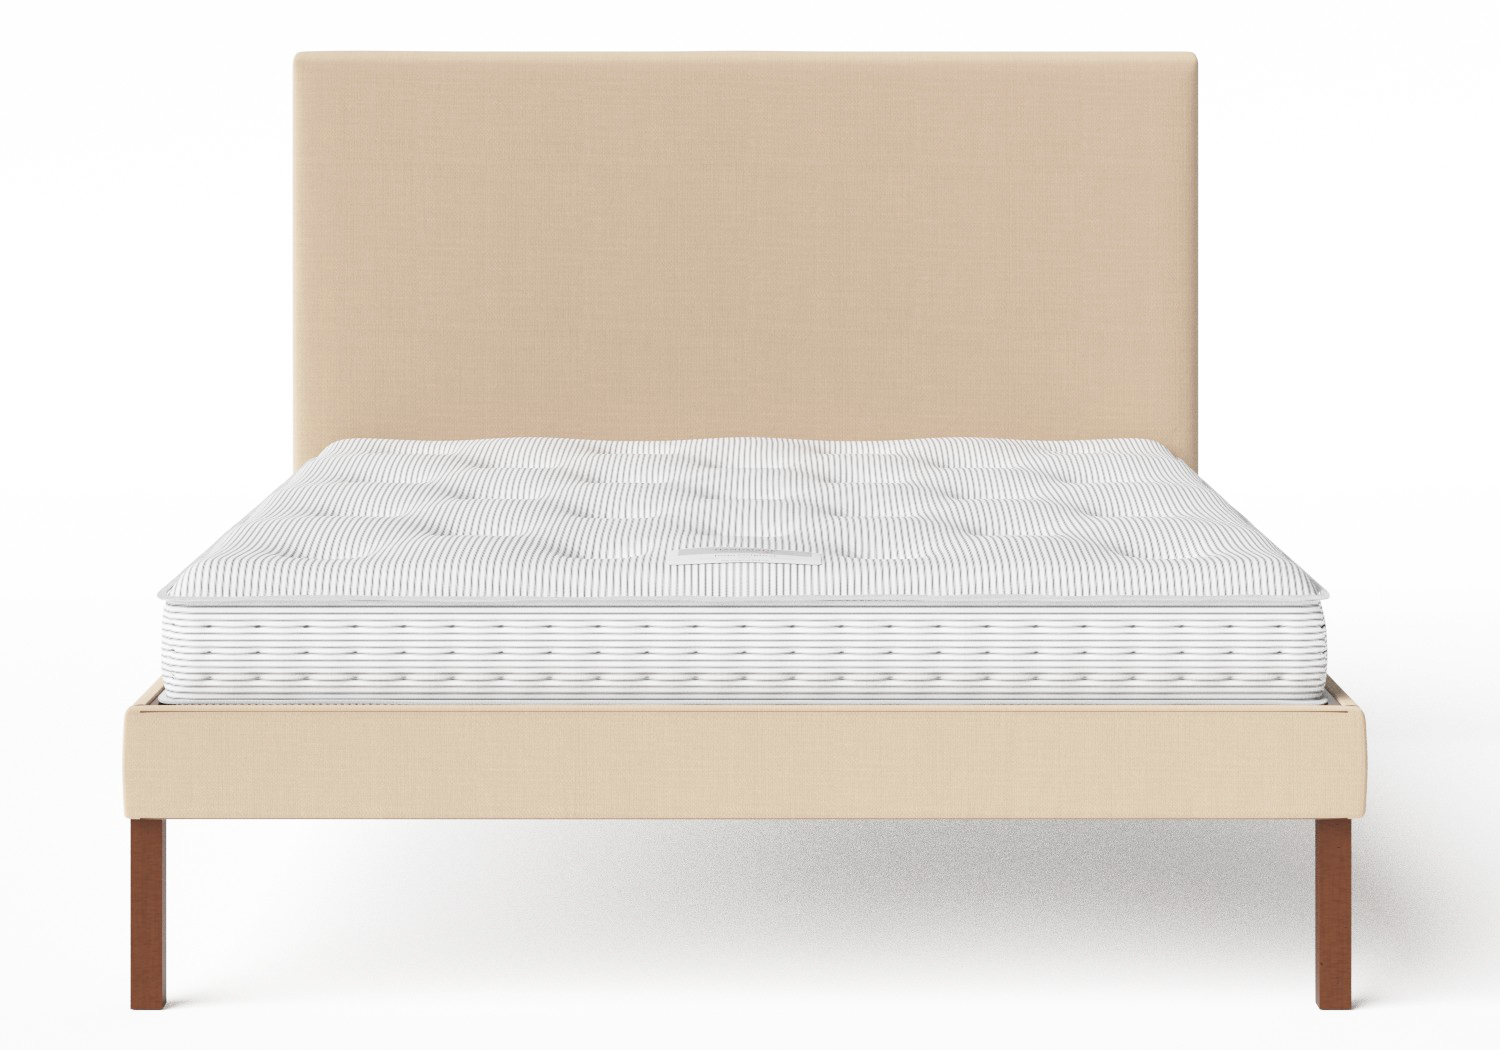 Misaki Upholstered Bed in Natural fabric shown with Juno 1 mattress